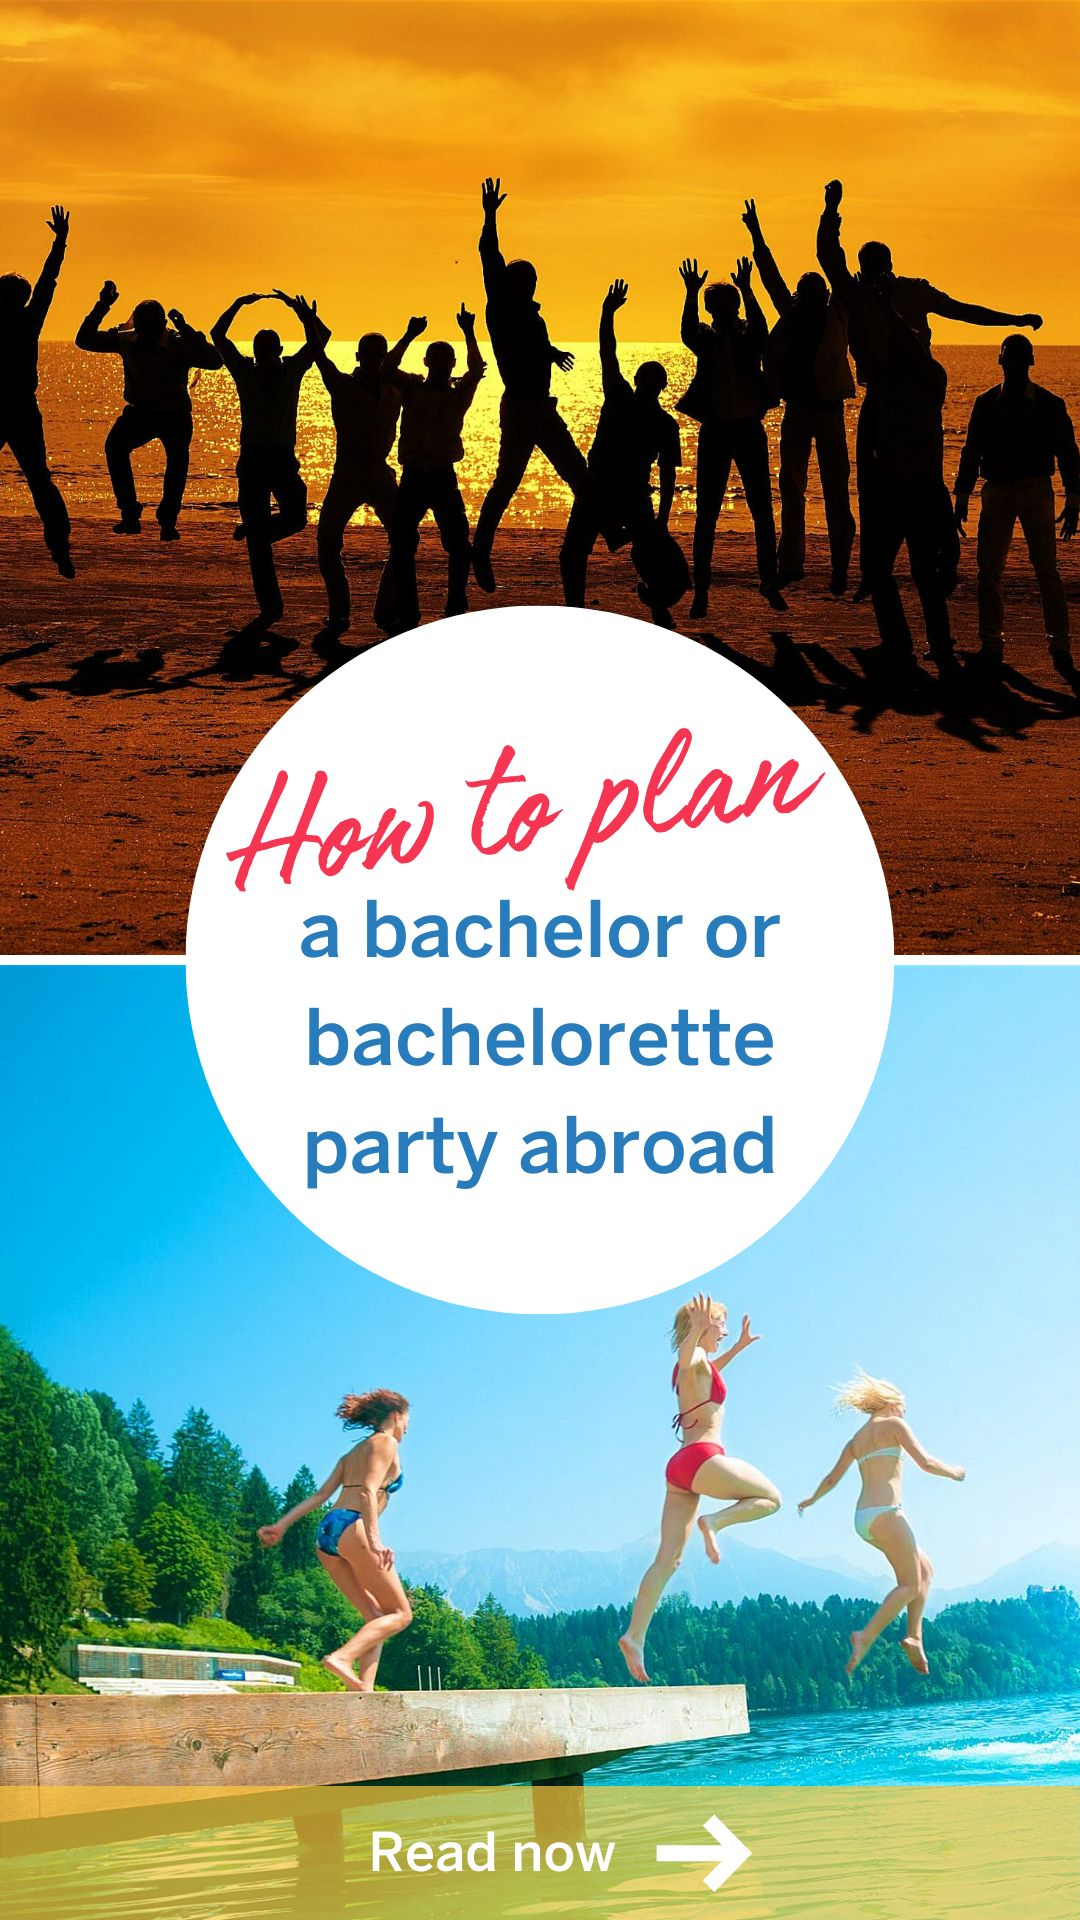 How to plan a bachelor or bachelorette party abroad